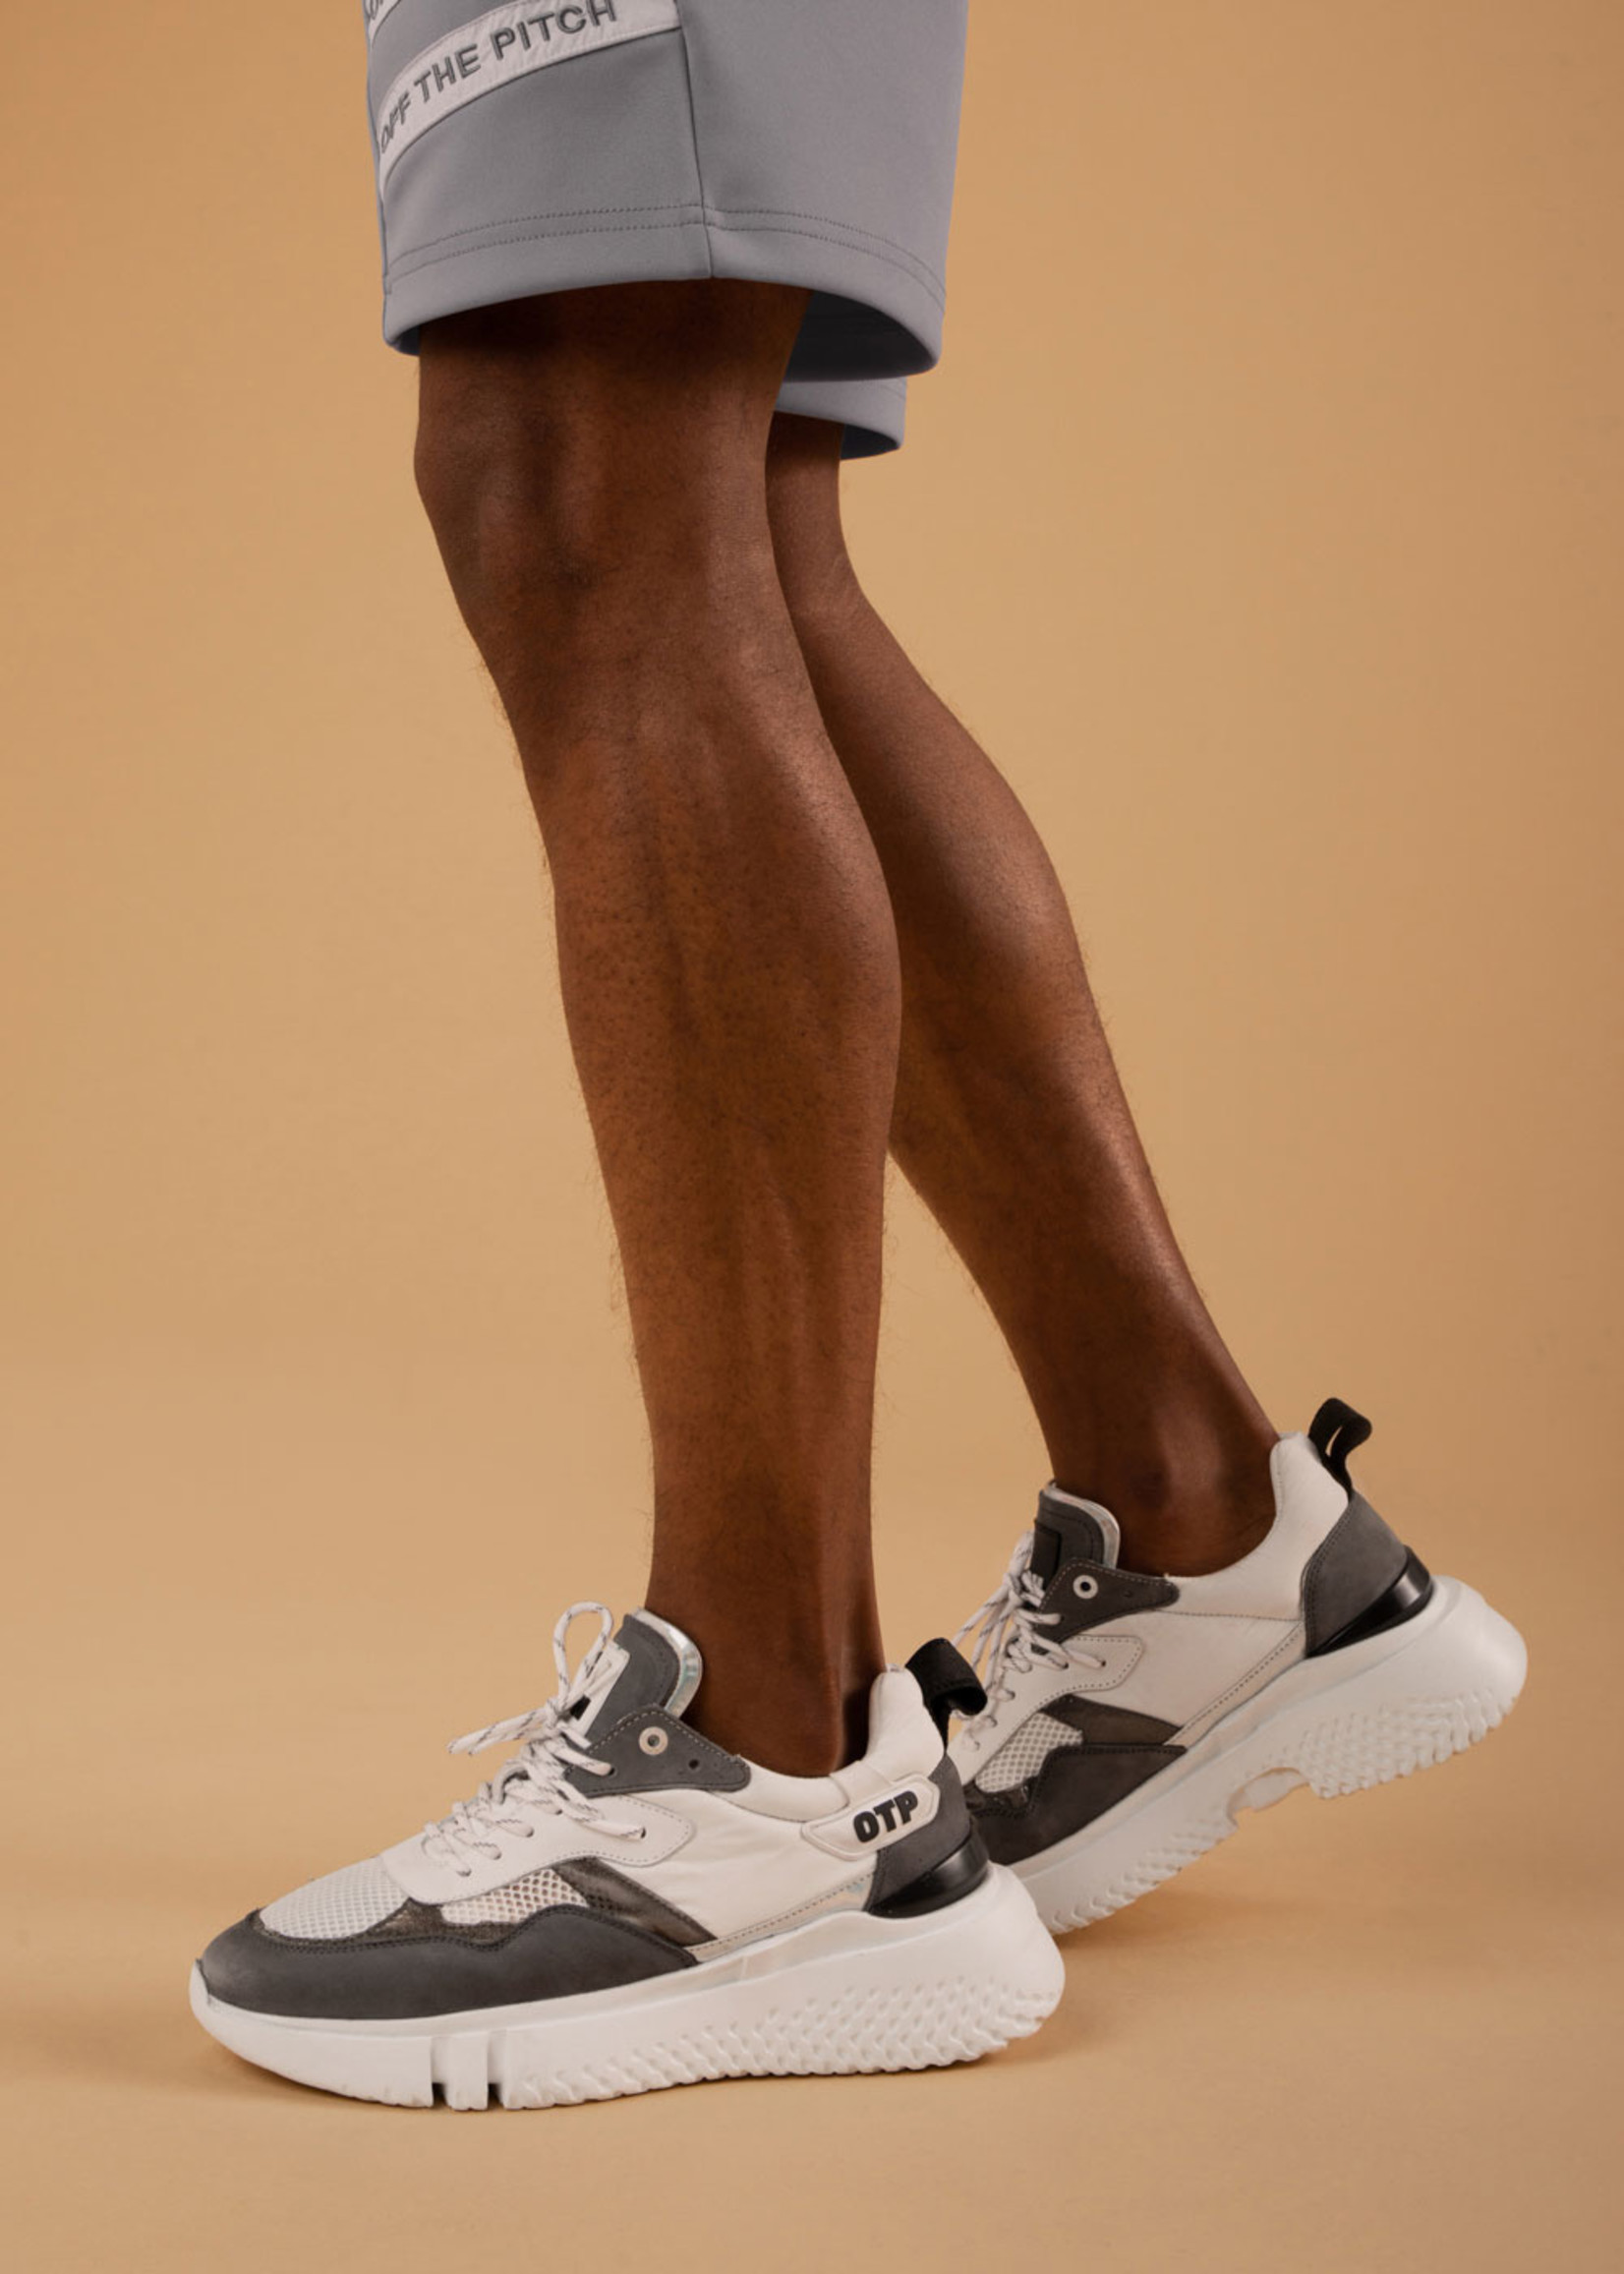 OFF THE PITCH OFF THE PITCH | Crunch Runner 2.0 - White